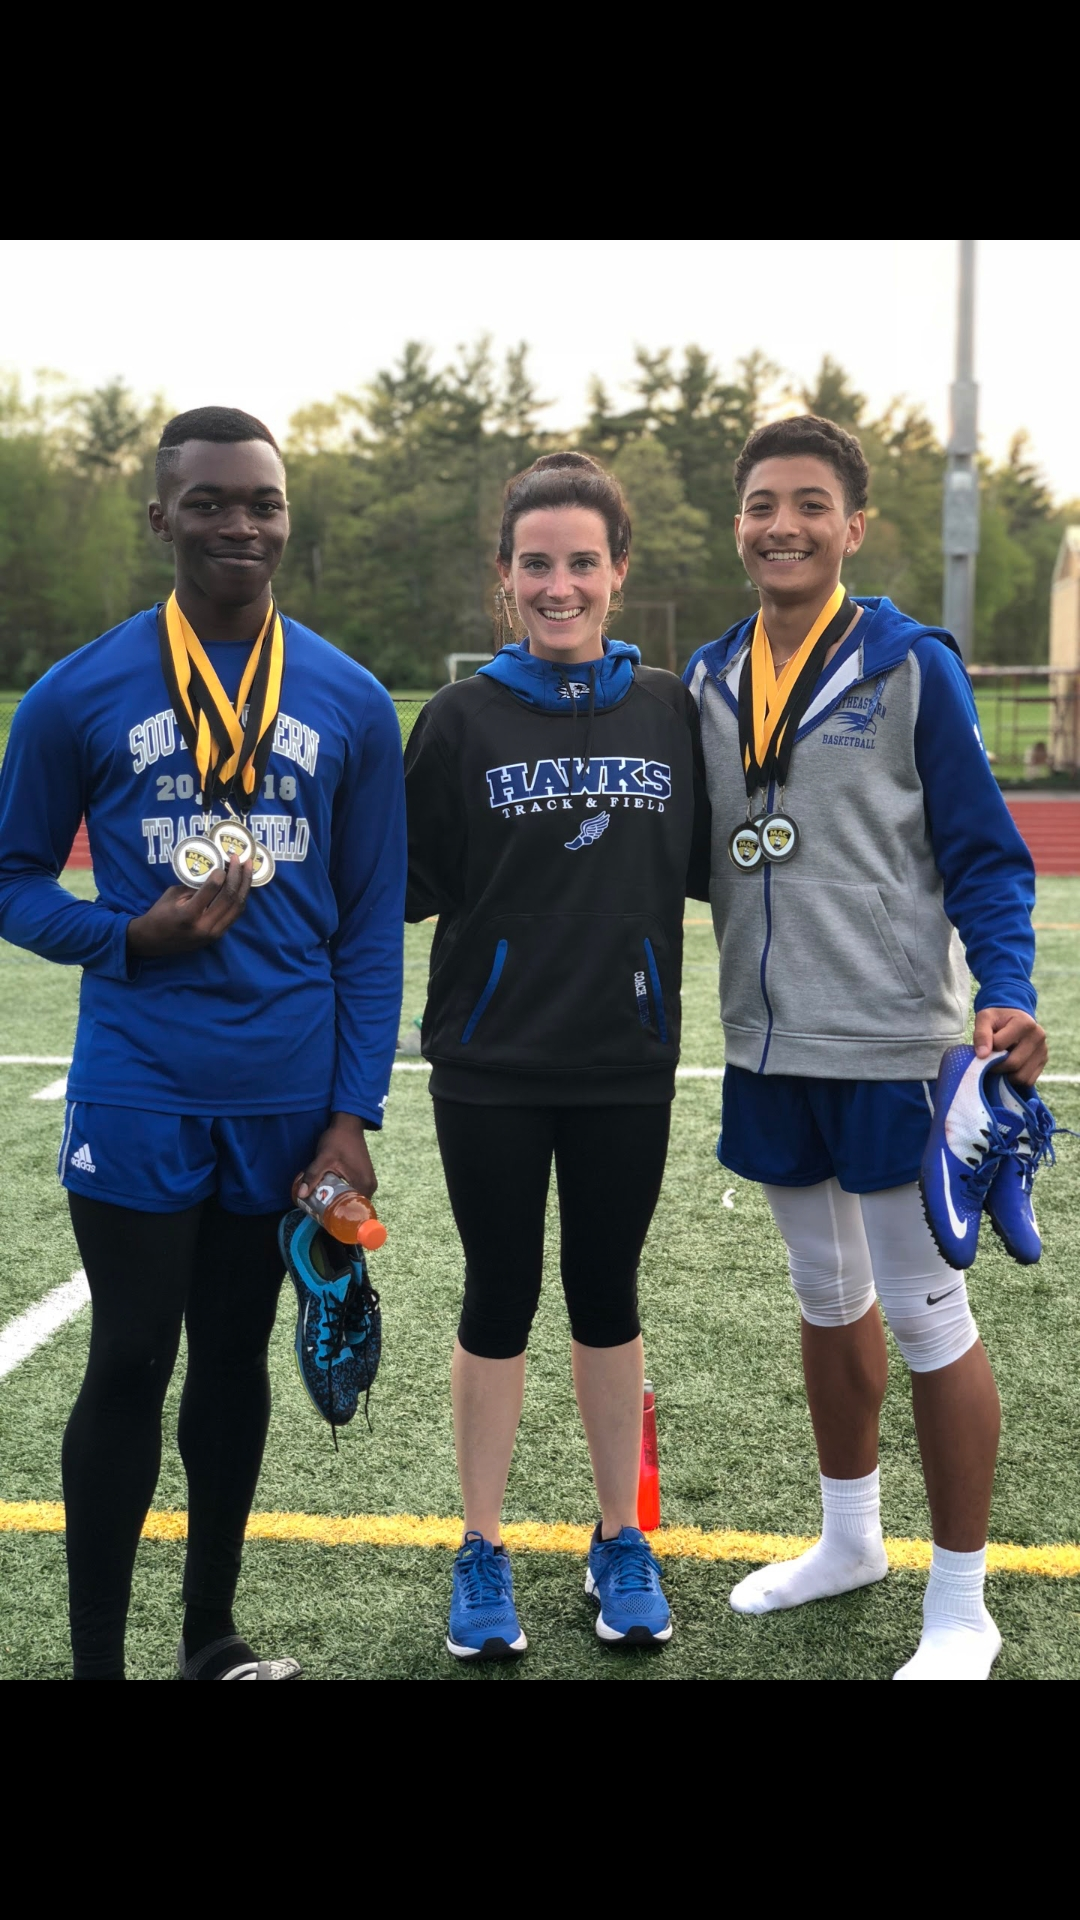 Southeastern Runners and Coach Receive Awards and Recognition for Top Performances